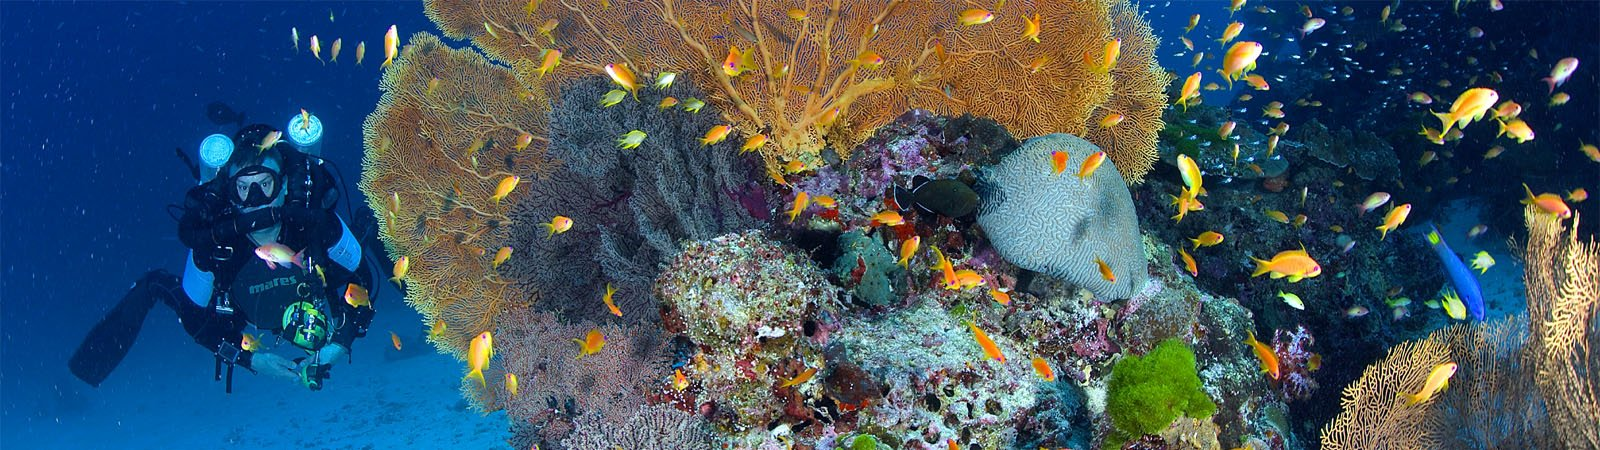 Diving trips Image